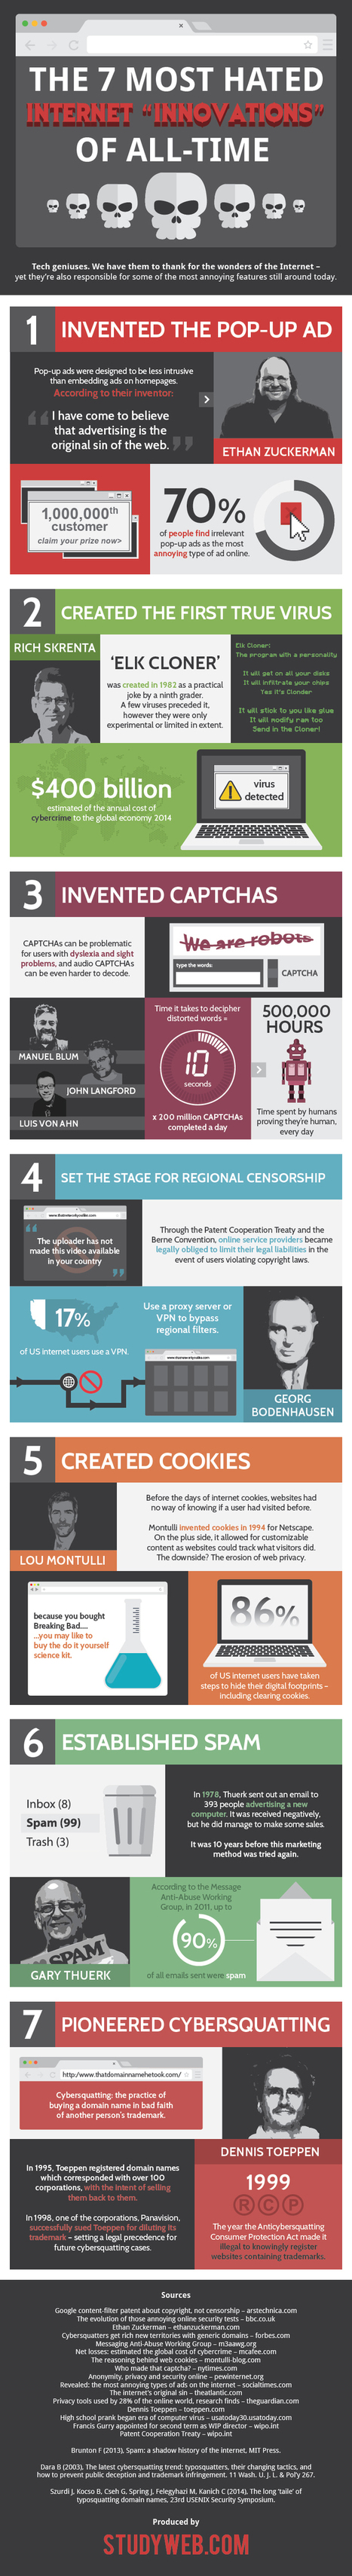 """The 7 Most Hated Internet """"Innovations"""" of All-Time 